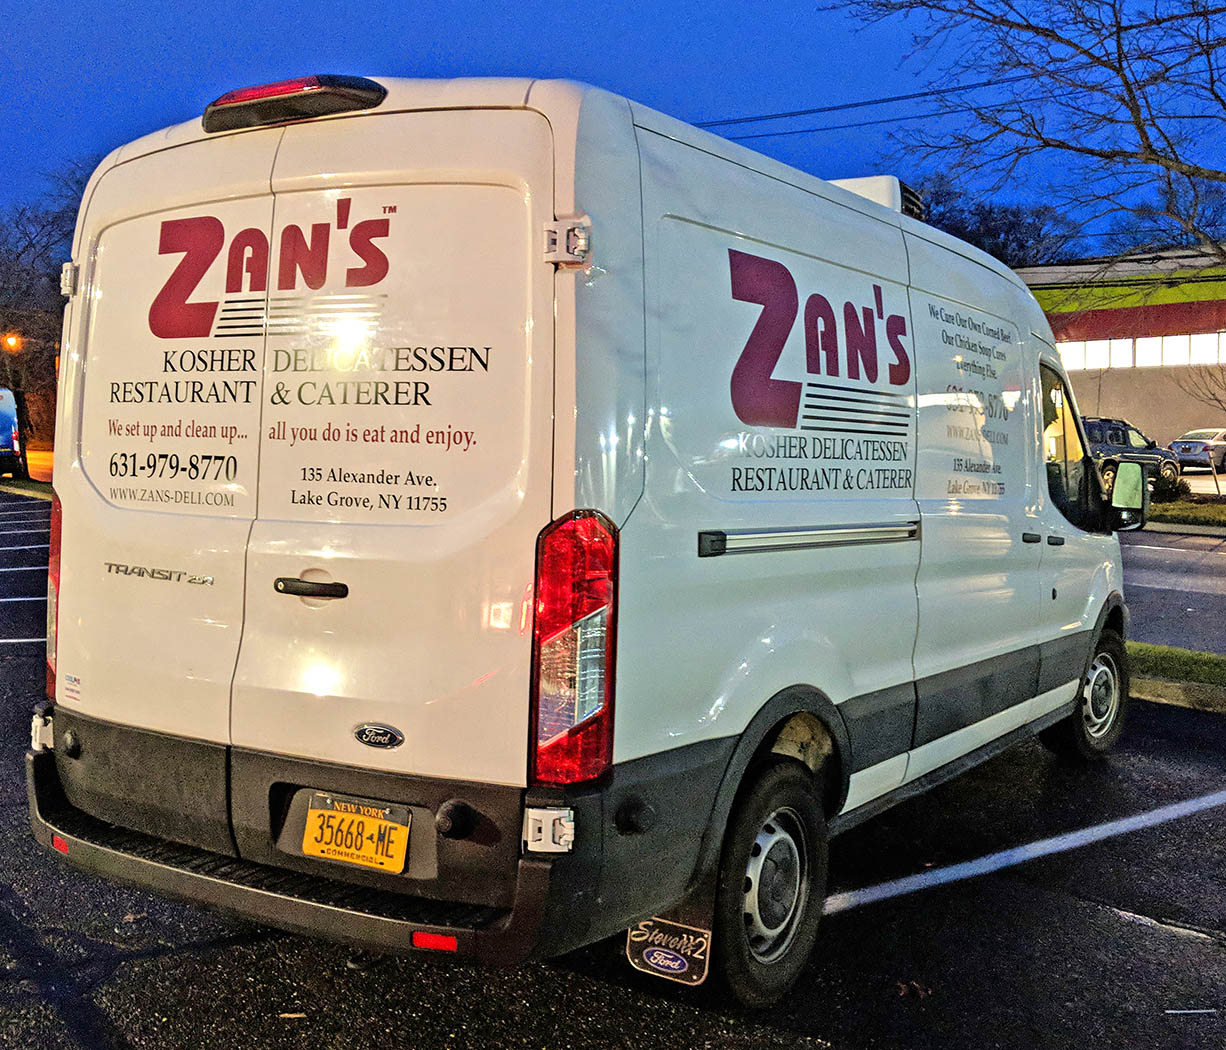 A white van with cut vinyl graphics for a catering company